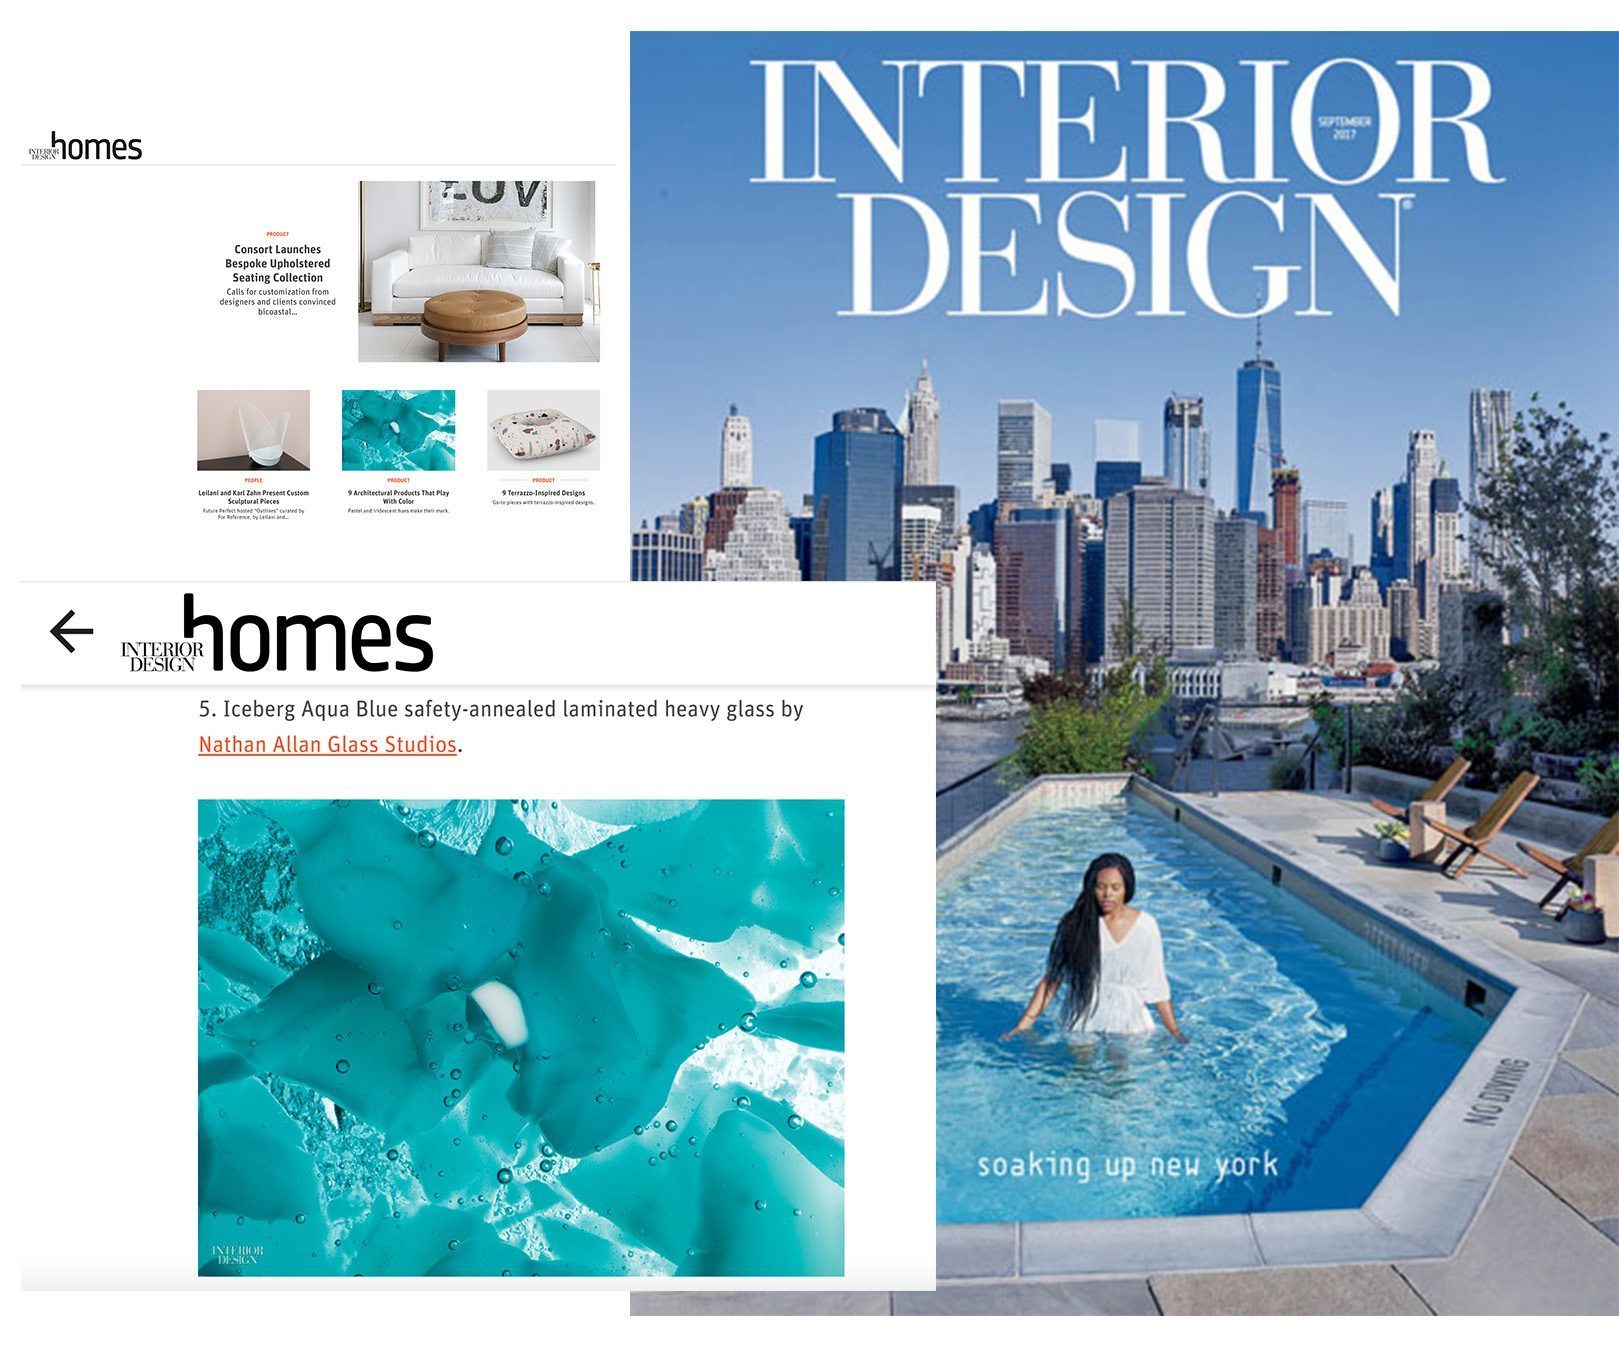 Interior Design Magazine Iceberg Glass